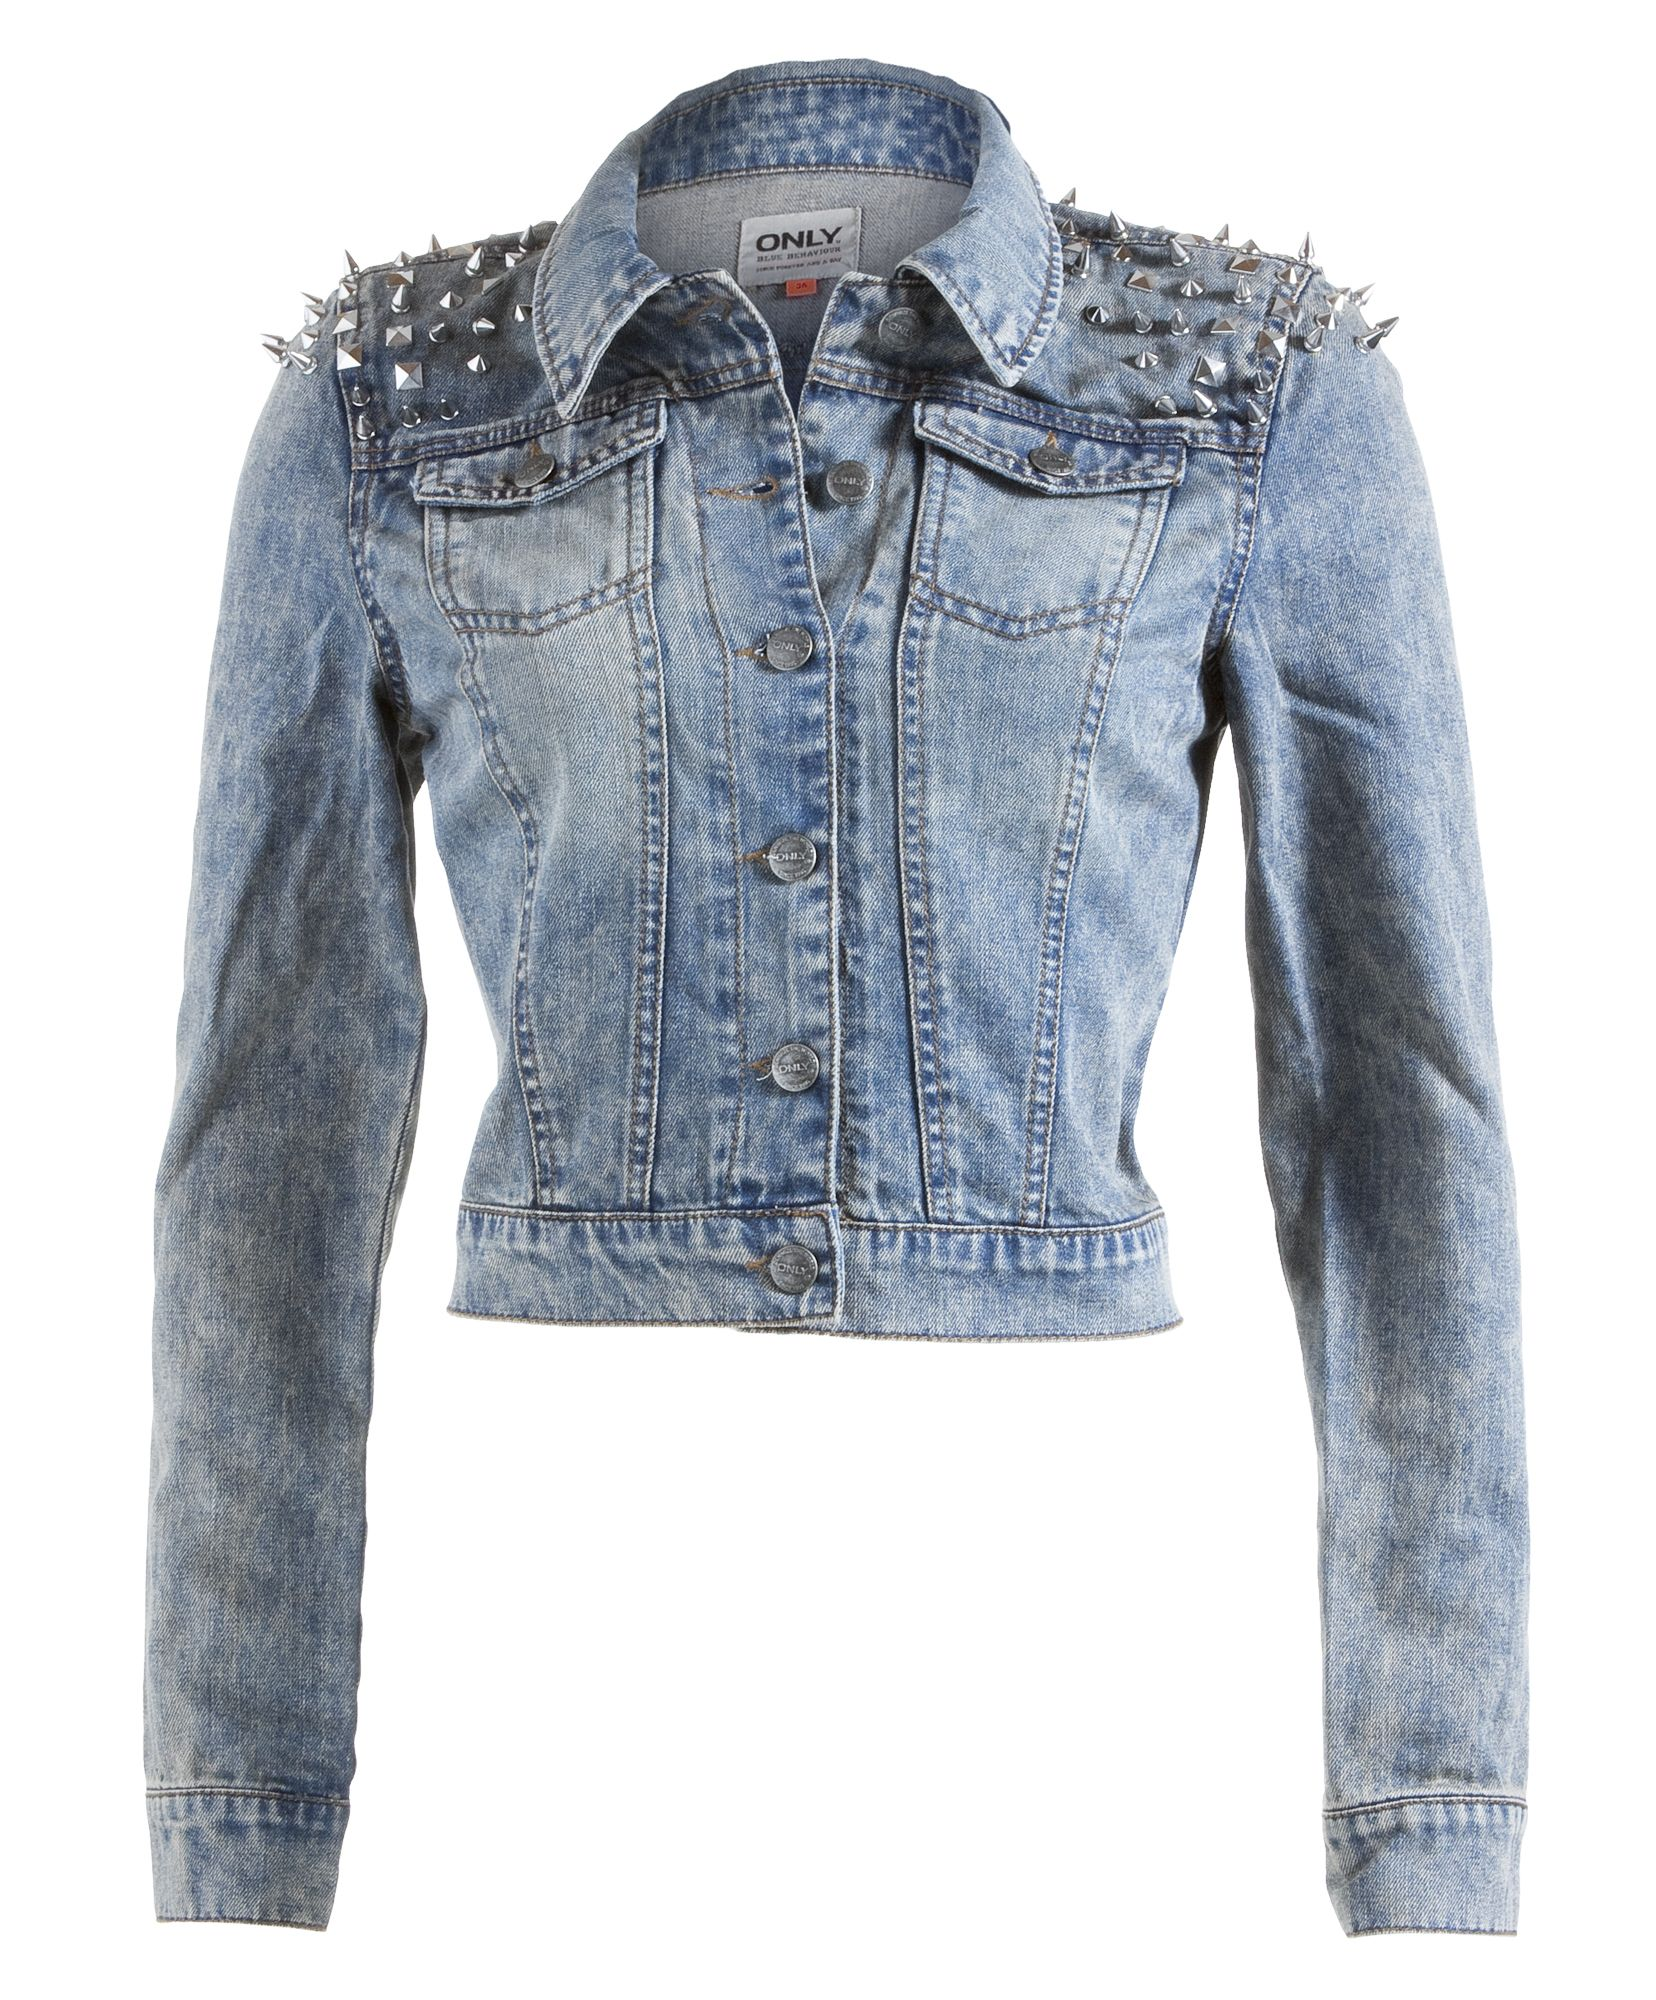 Only denim jacket with studs on the shoulder. Very cool. #ONLYDenimStyle